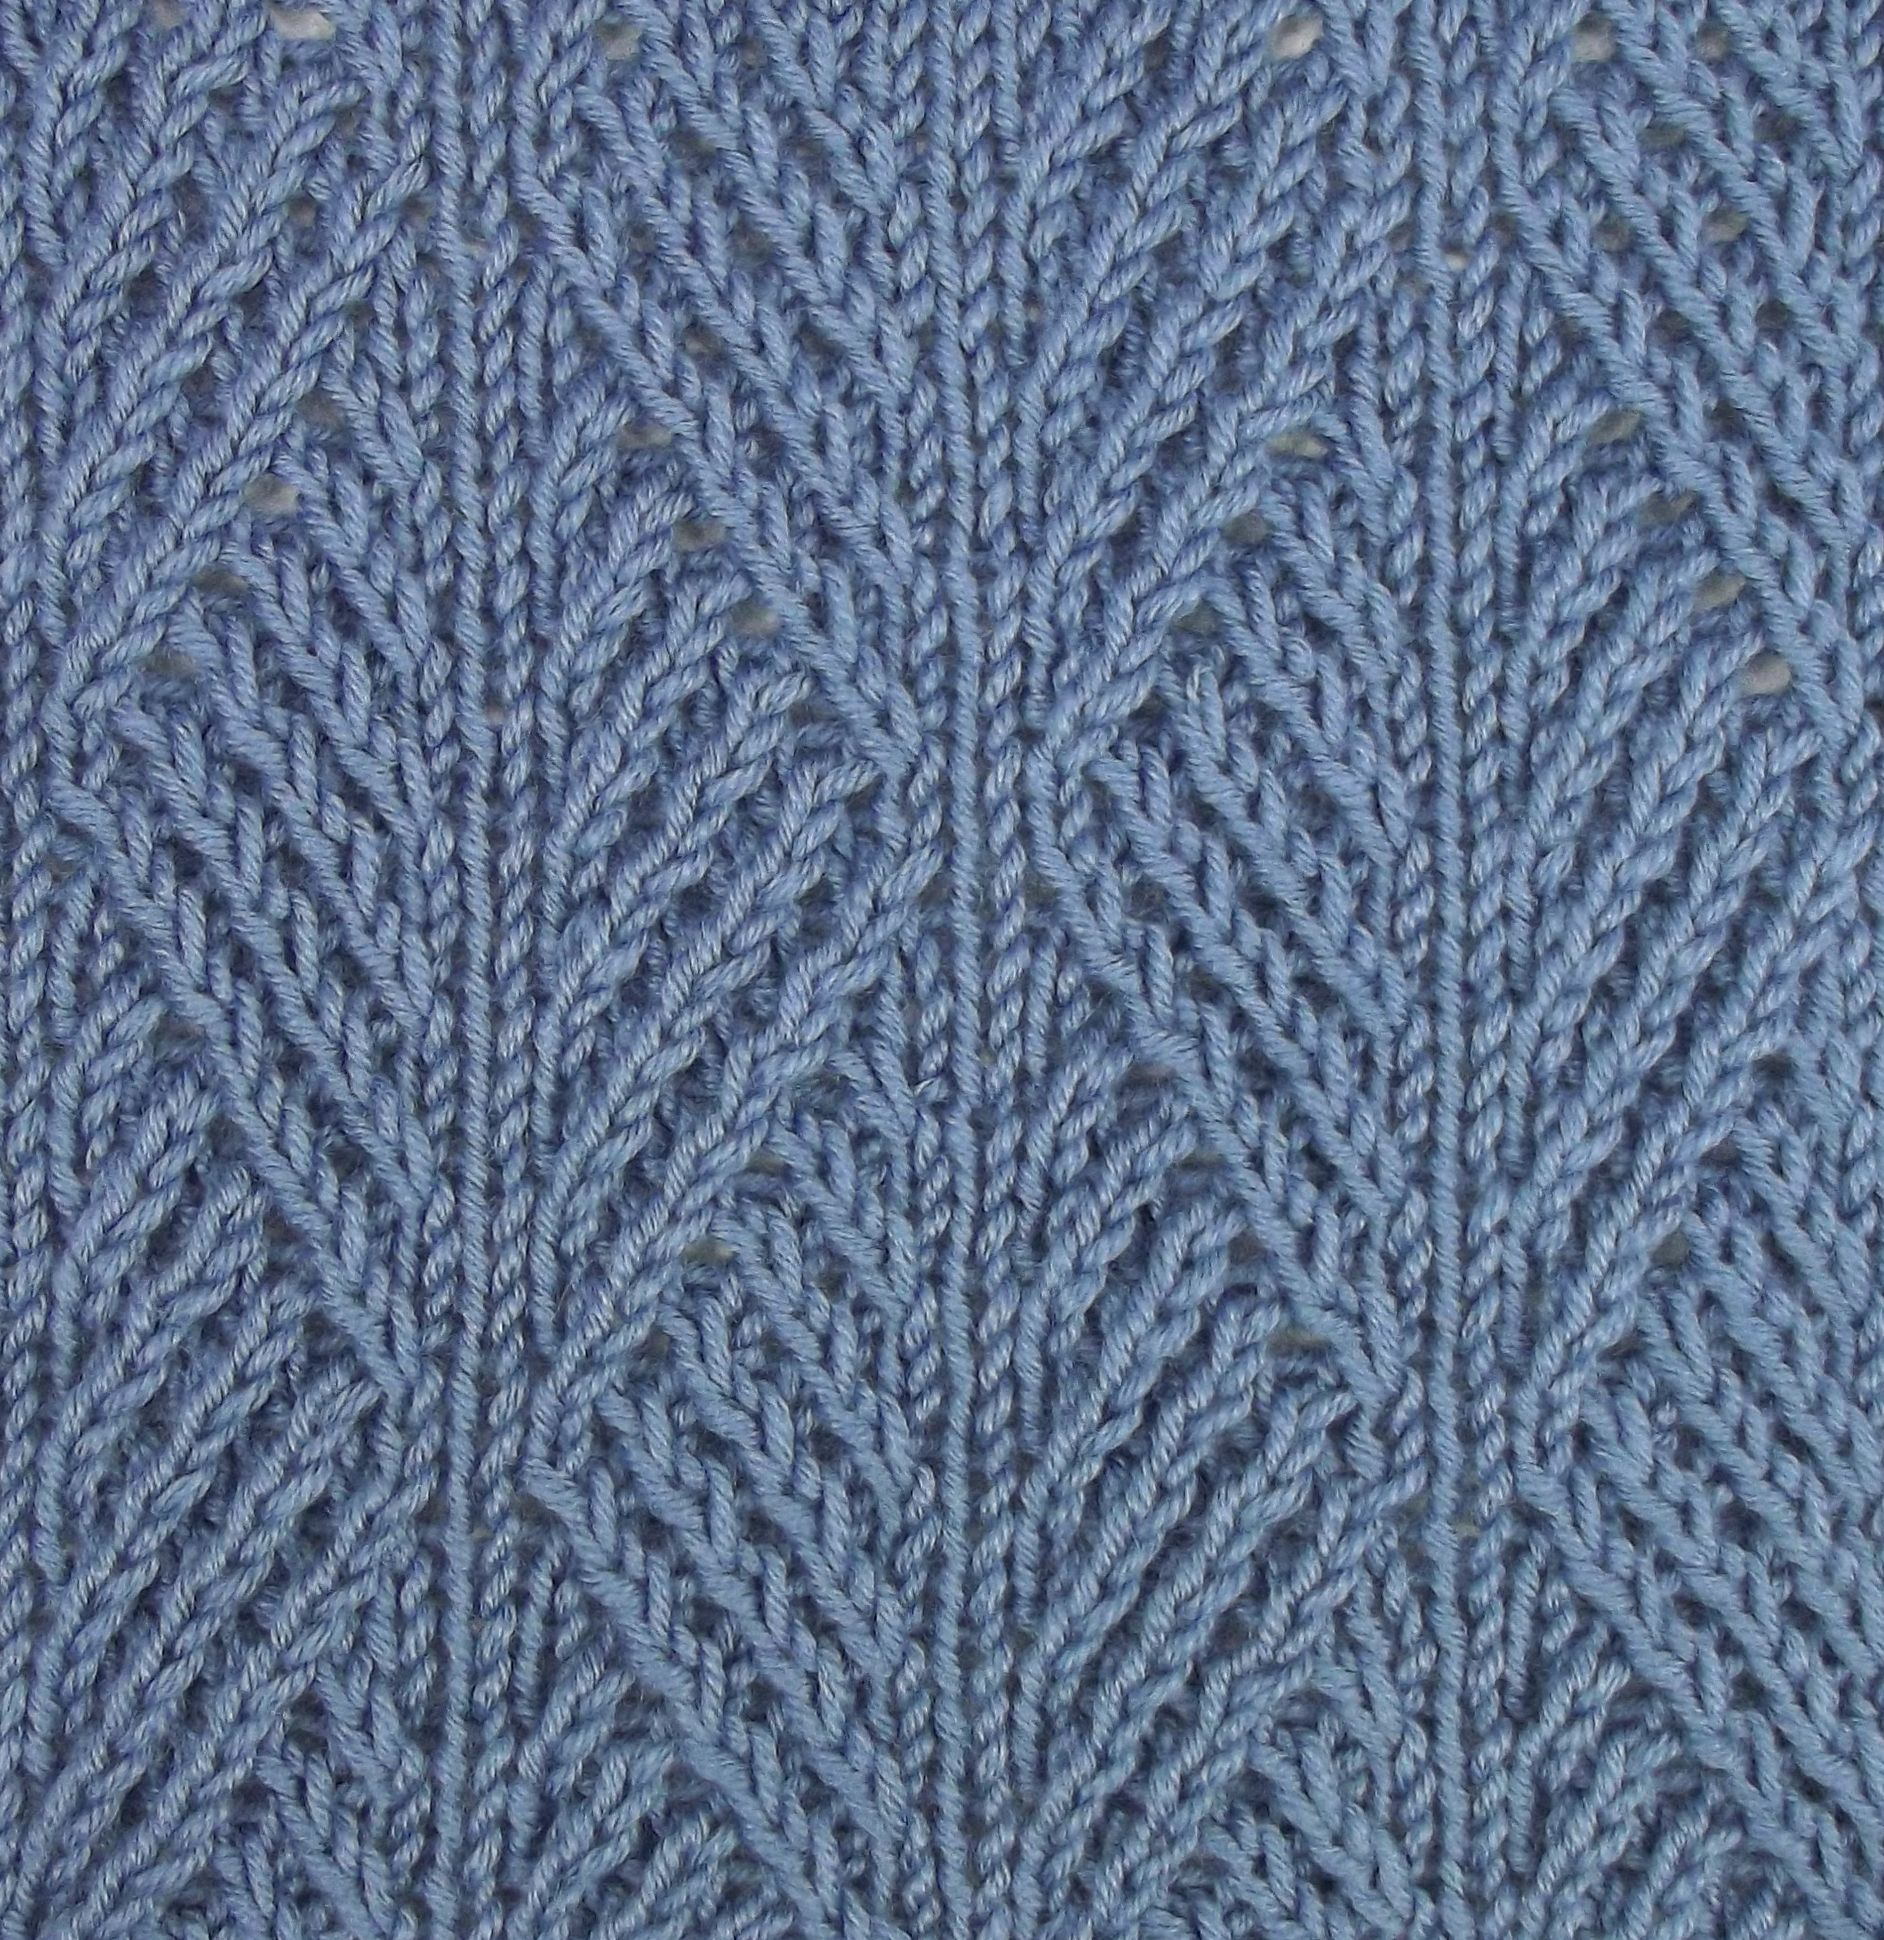 Ribbed Leaf Stitch Is Accomplished Using Twisted Stitches For An